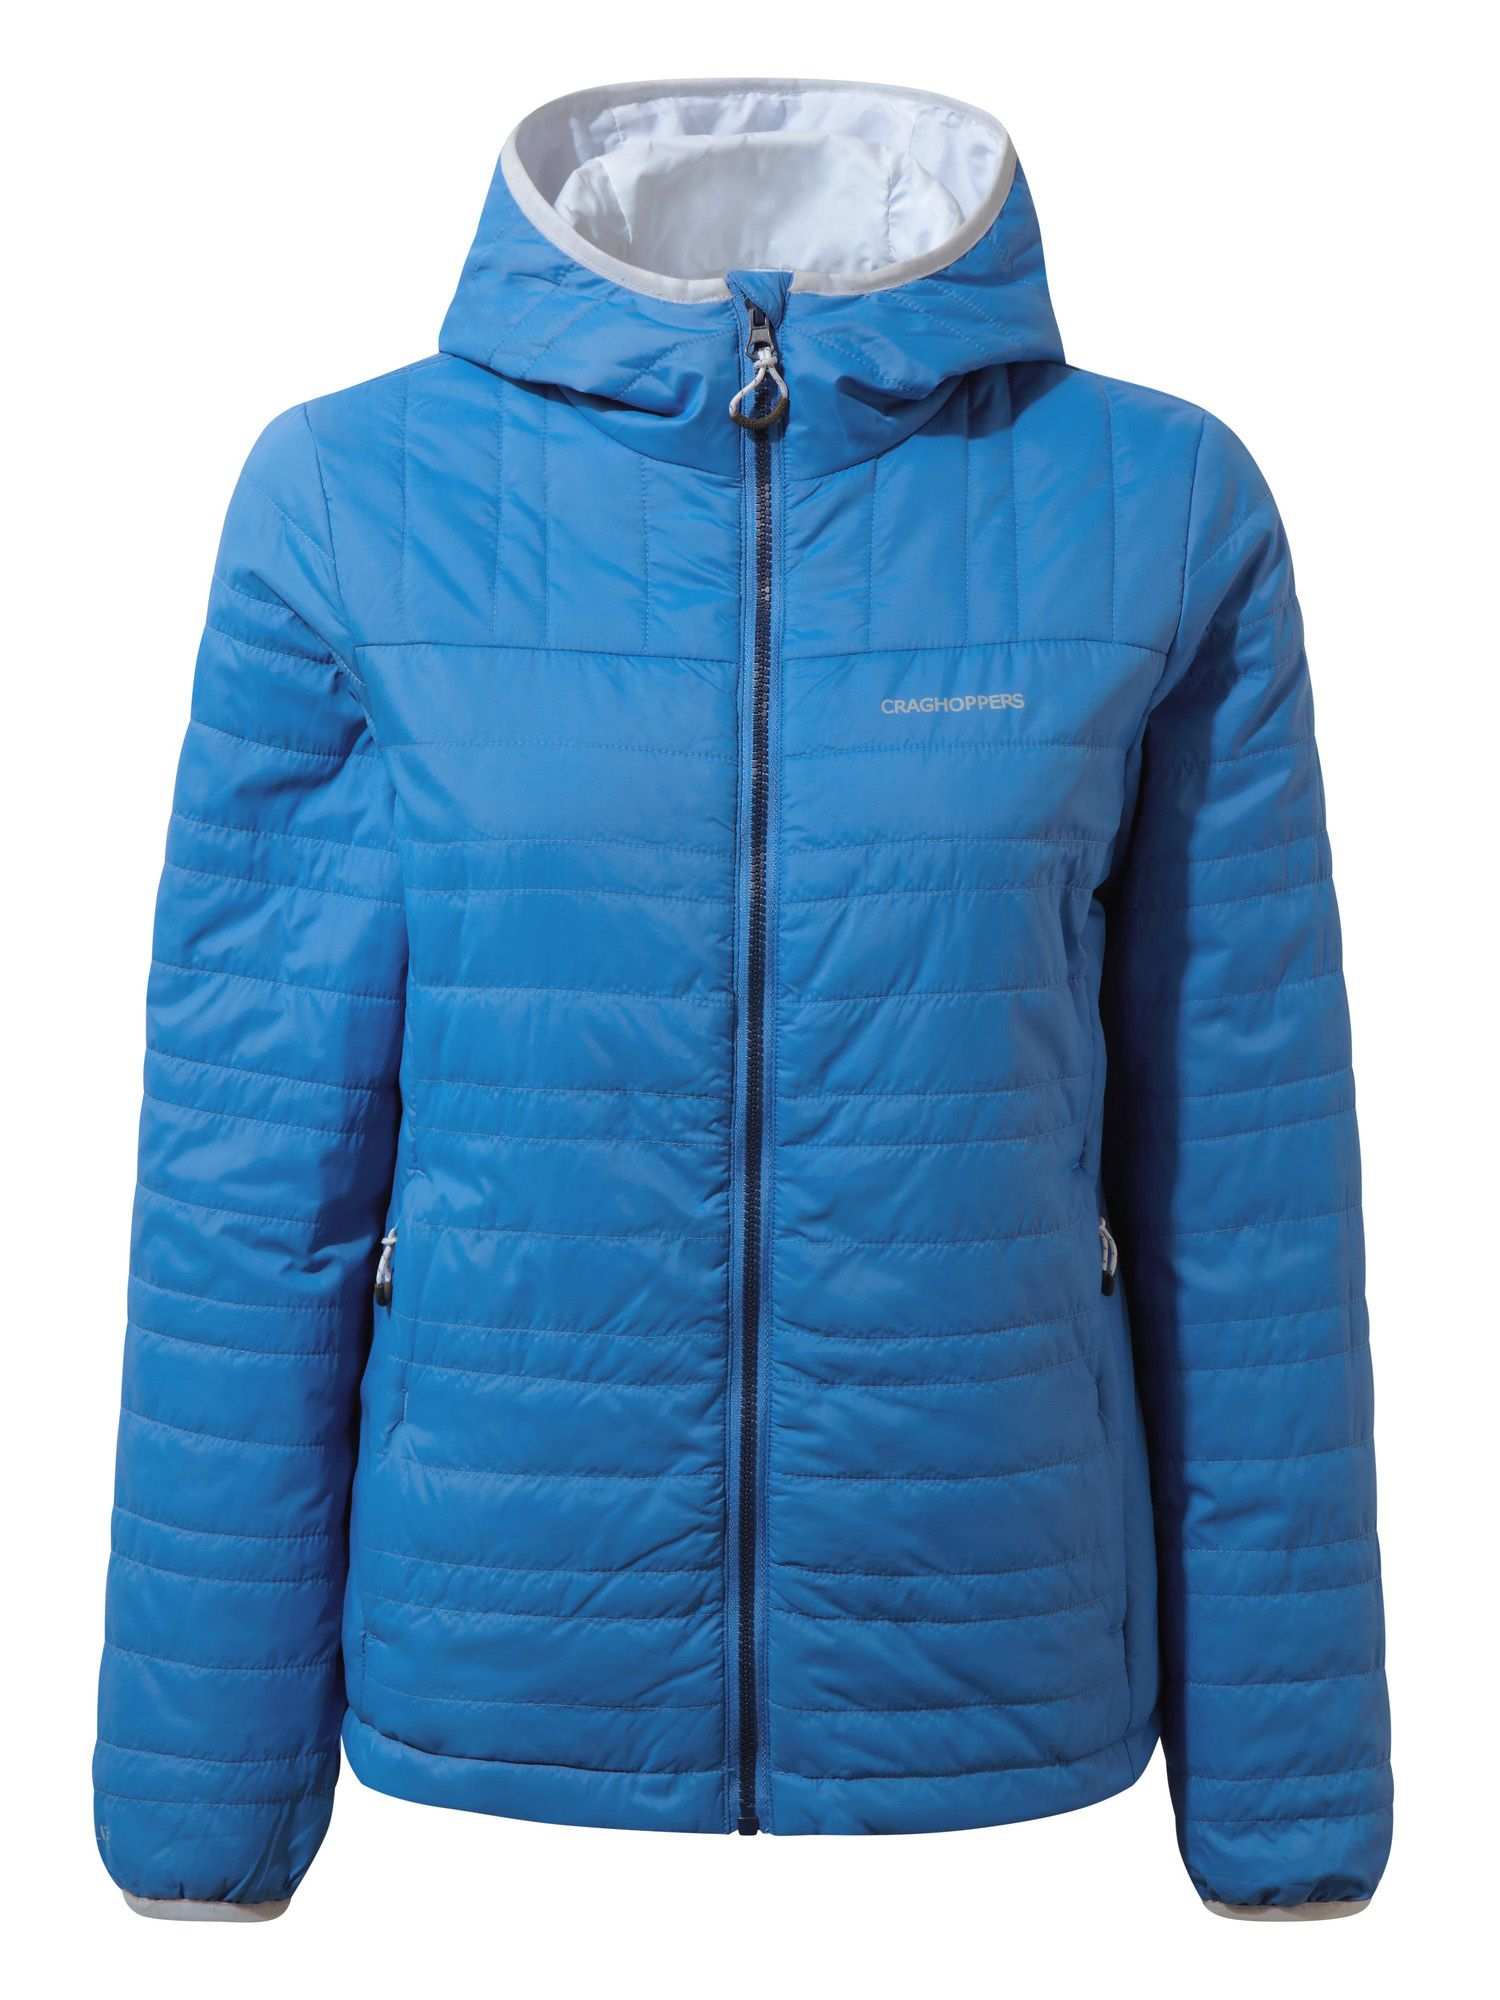 Craghoppers CompressLite Lightweight Jacket II, Blue